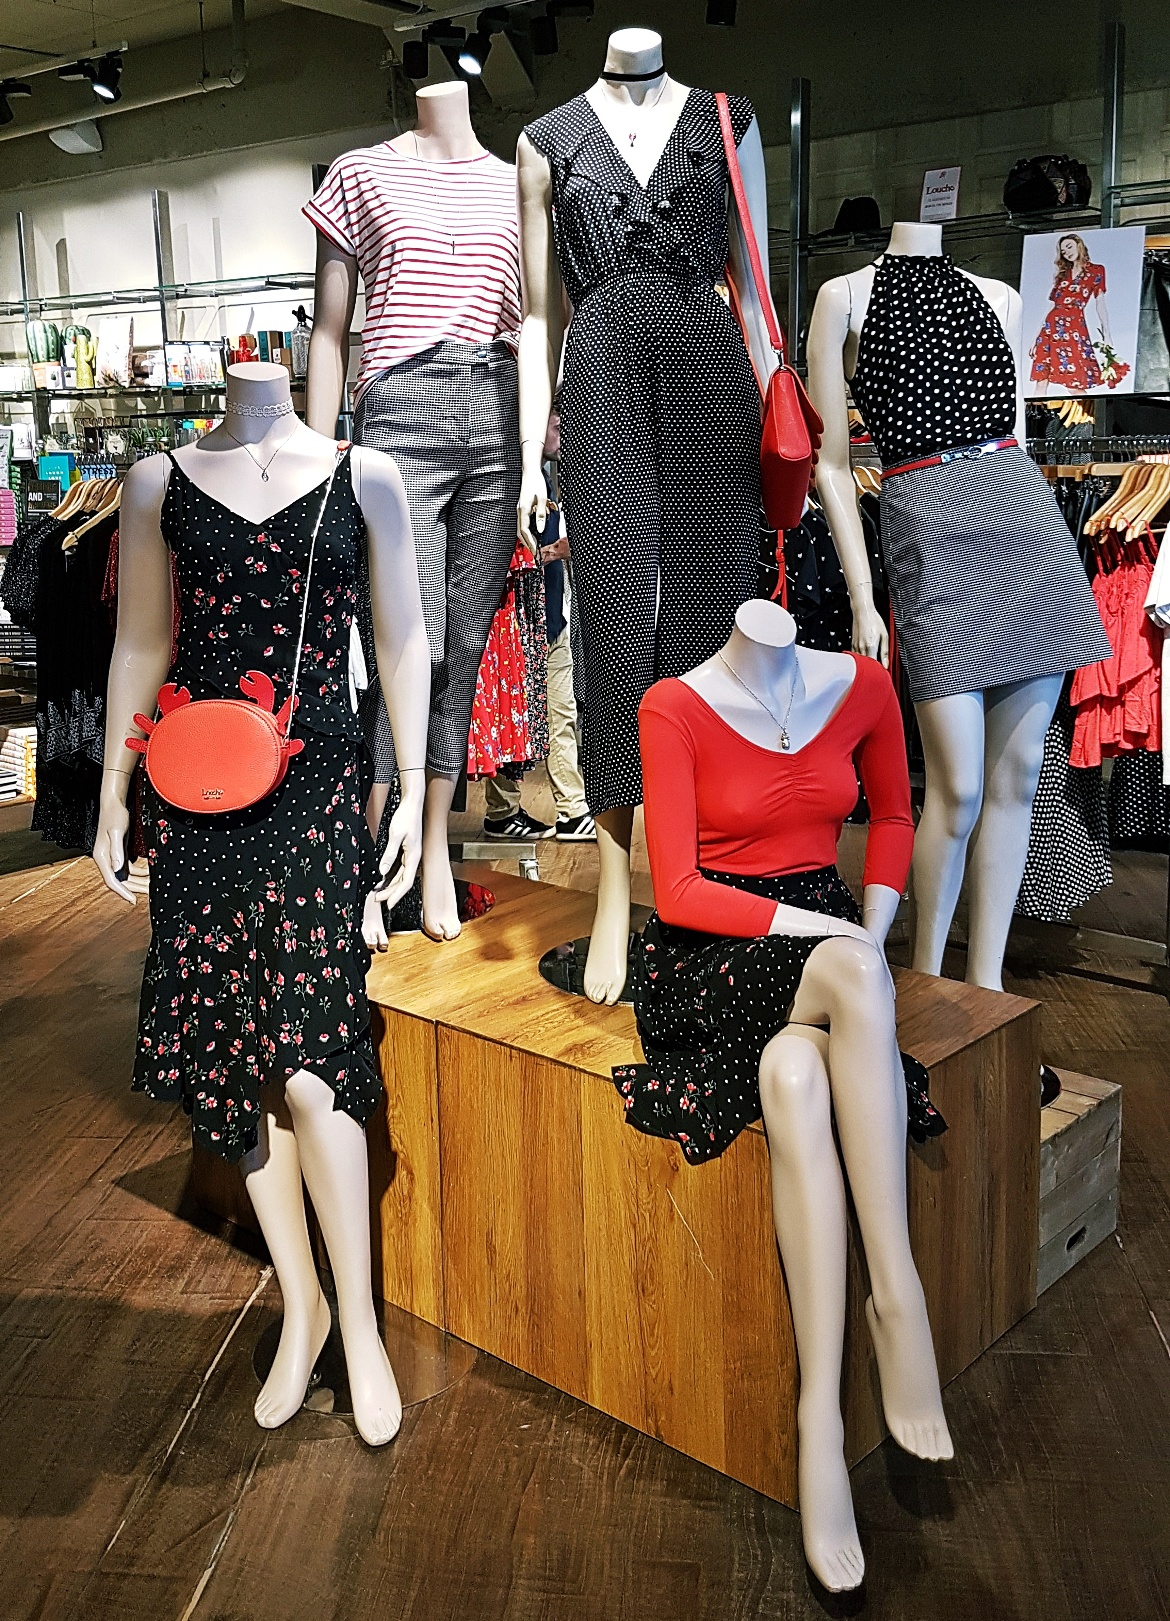 A range of clothes on mannequins - Tune in with Joy the Store, Leeds shop review by BeckyBecky Blogs